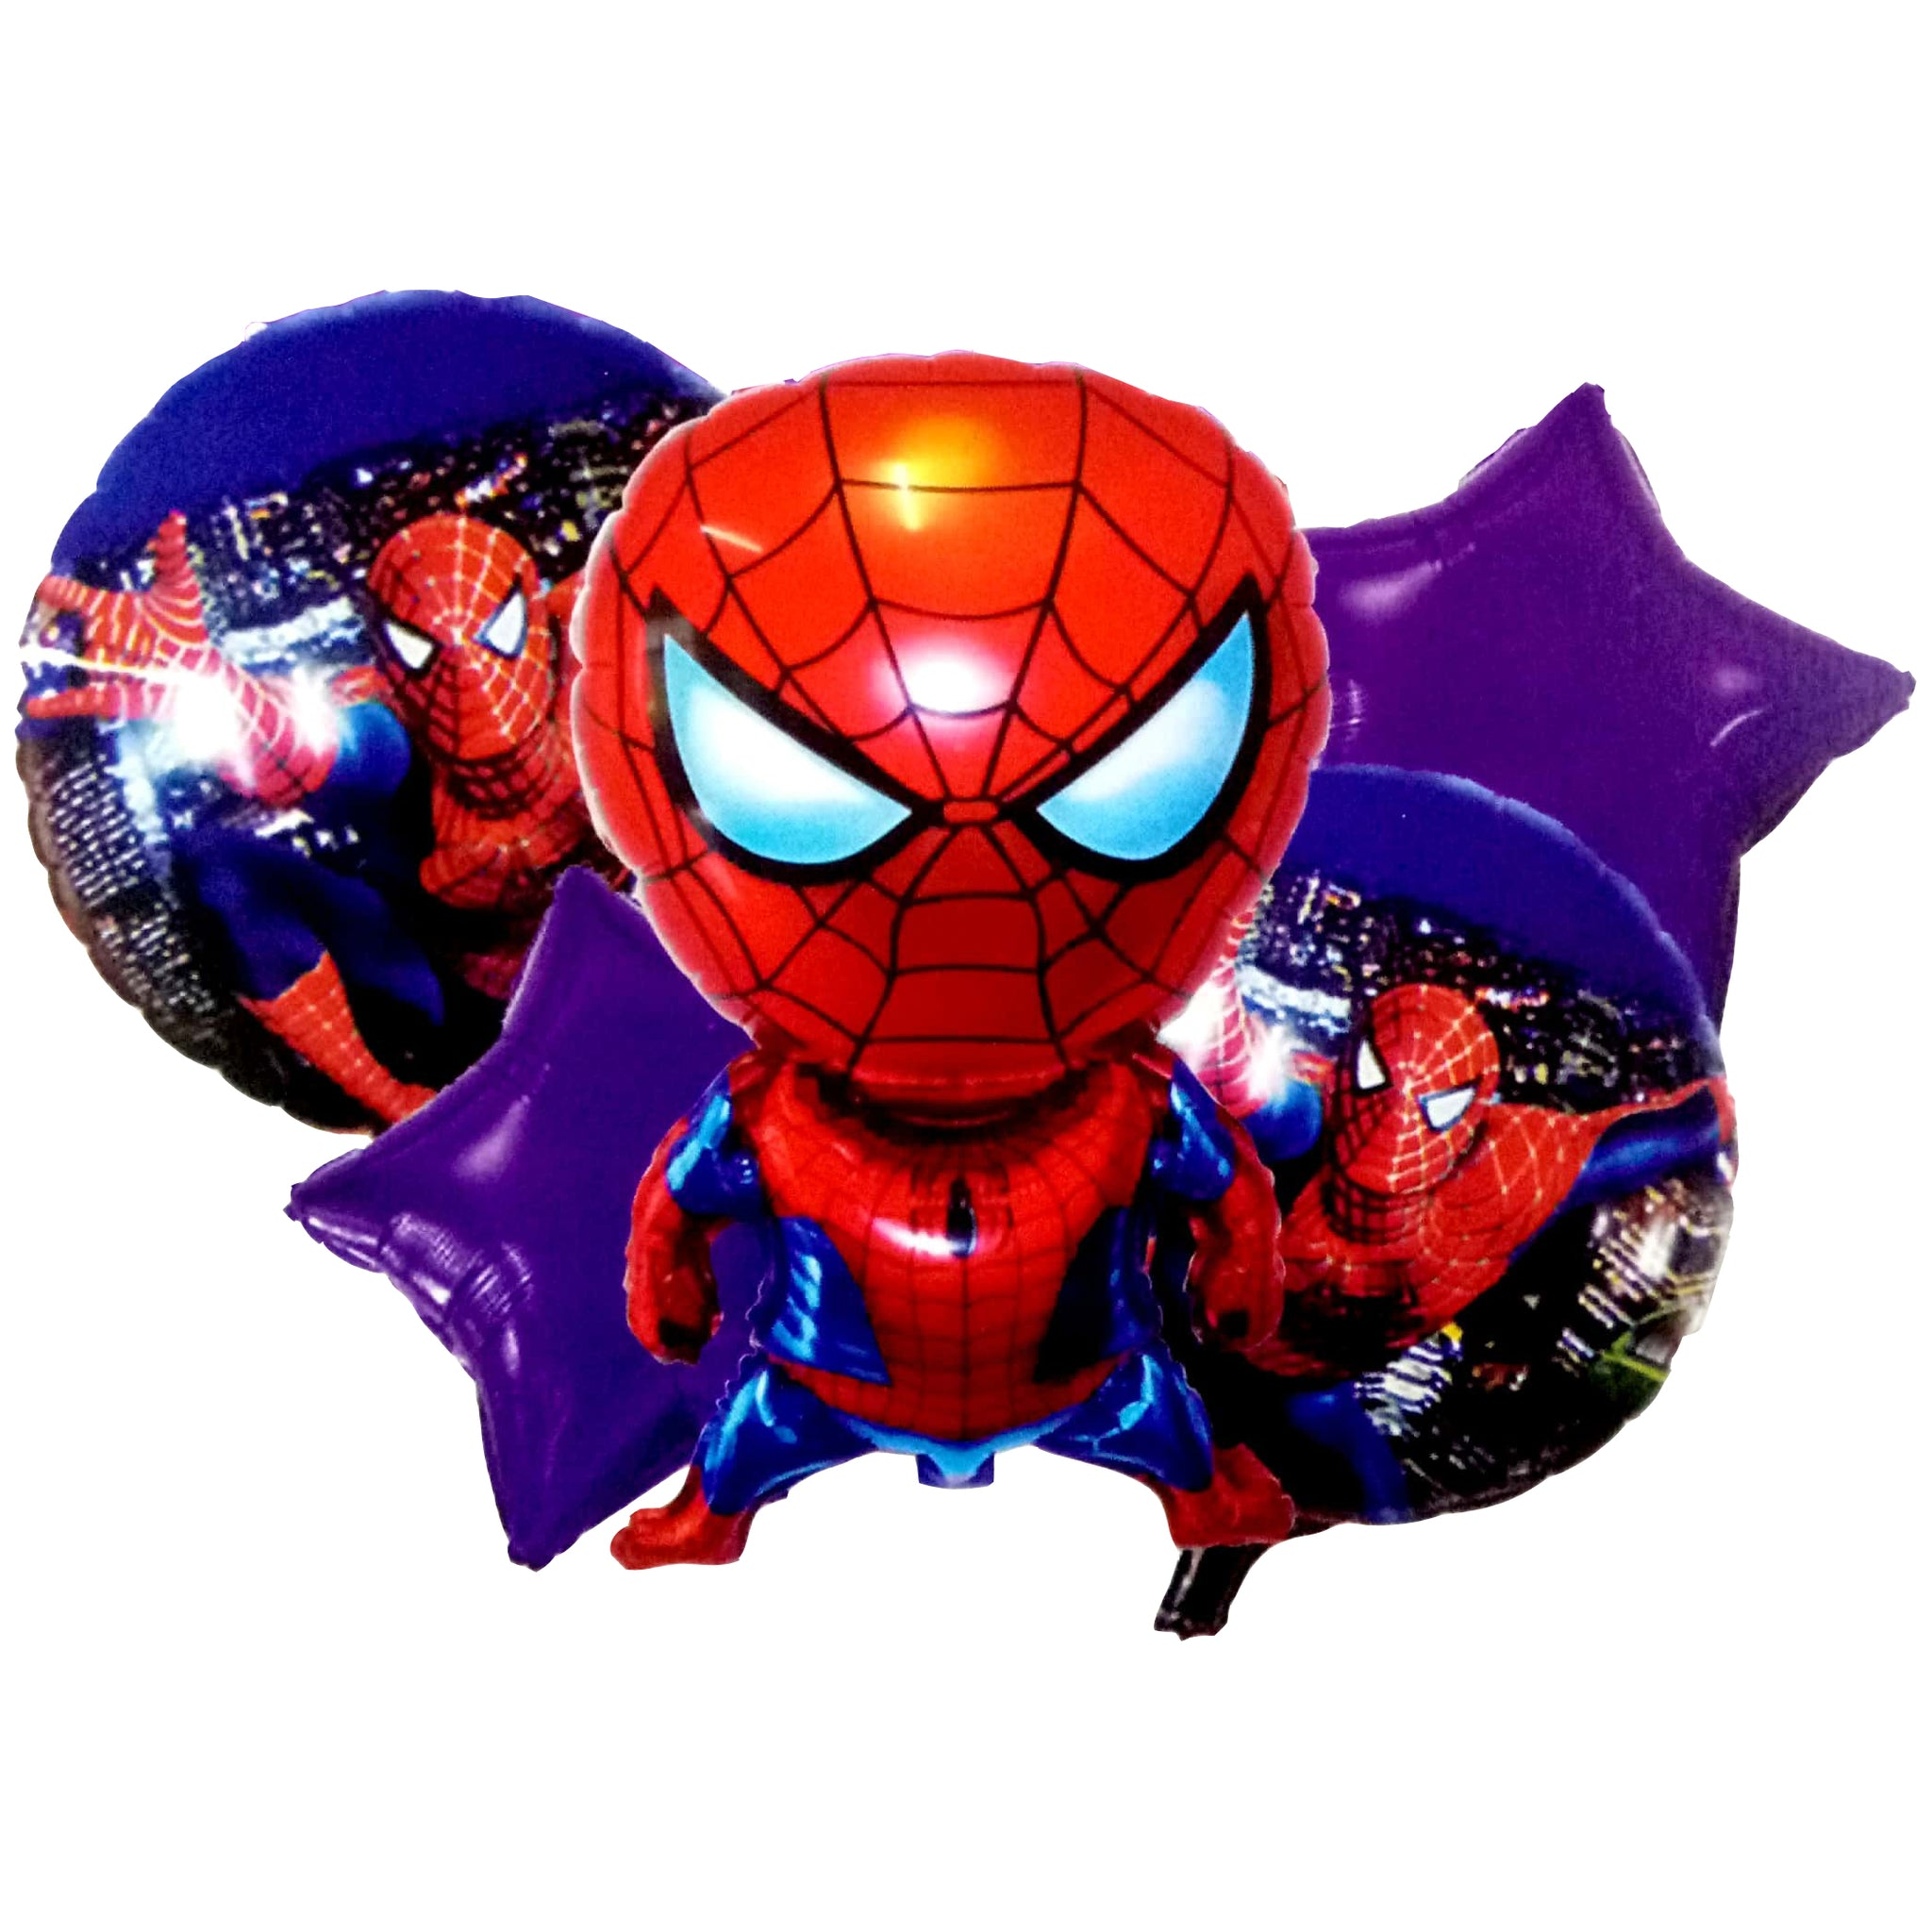 Spiderman Jumbo Foil Balloons (Set of 5pcs.)